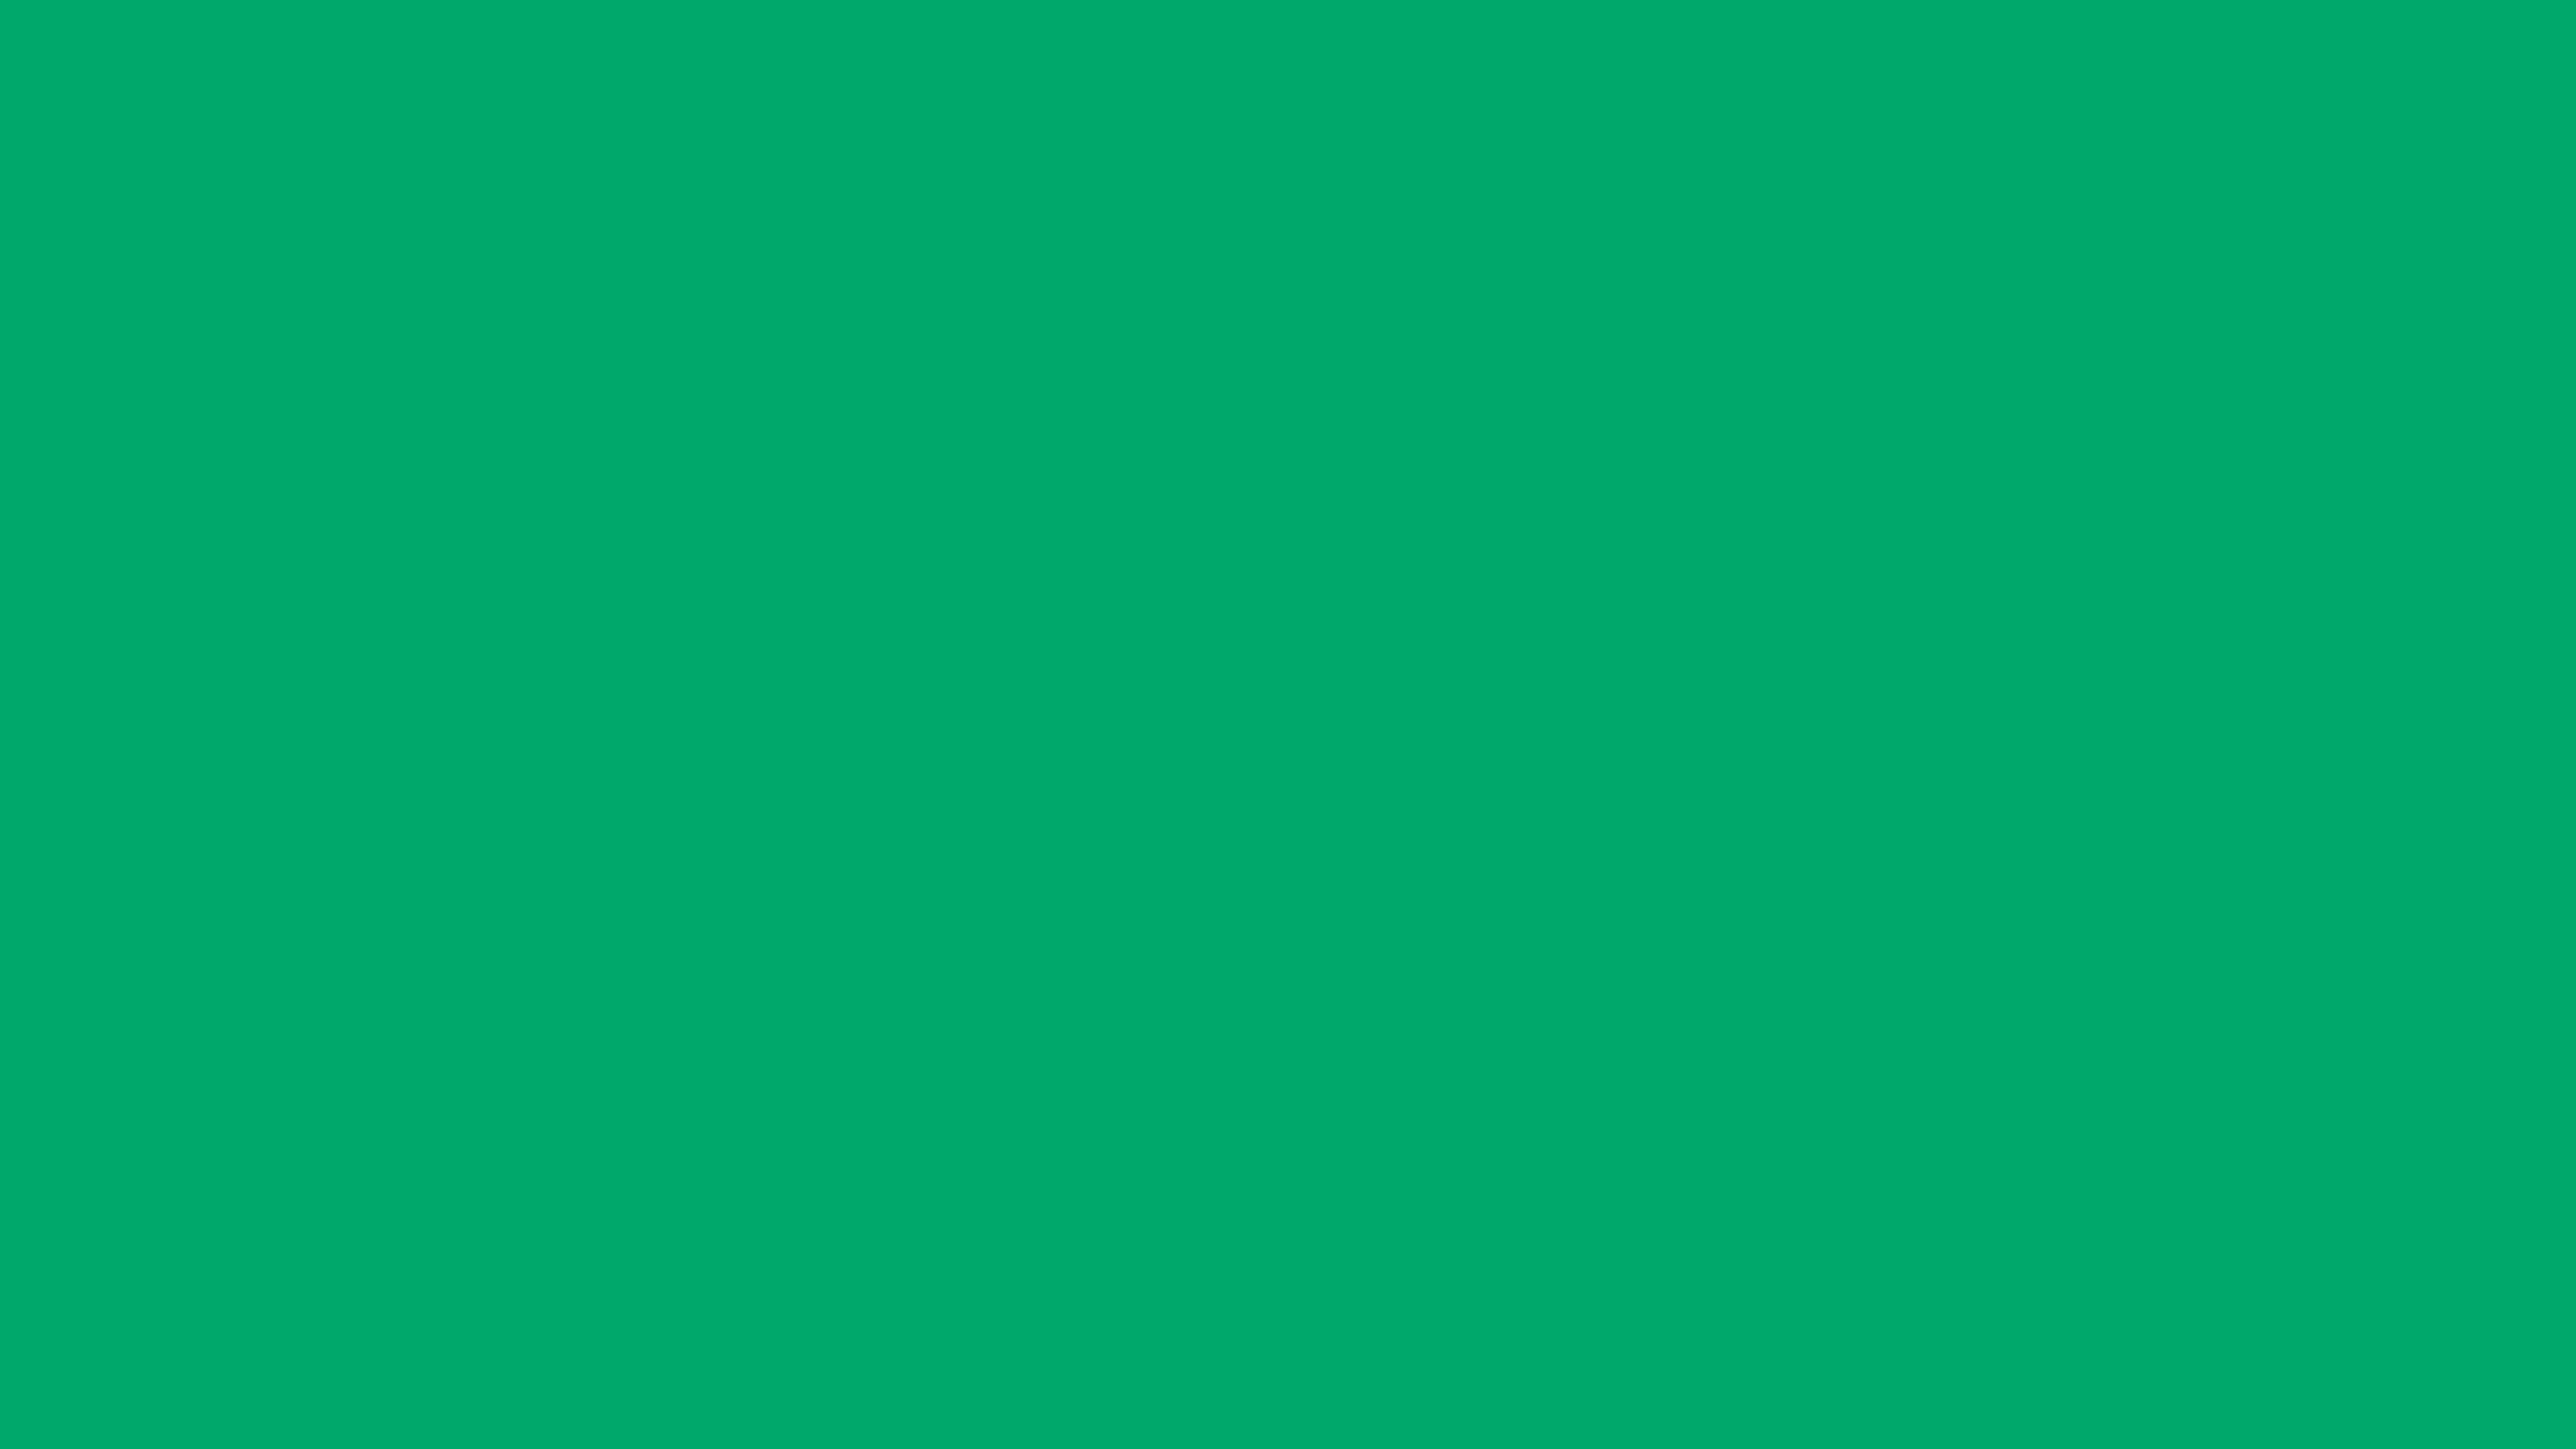 7680x4320 Jade Solid Color Background